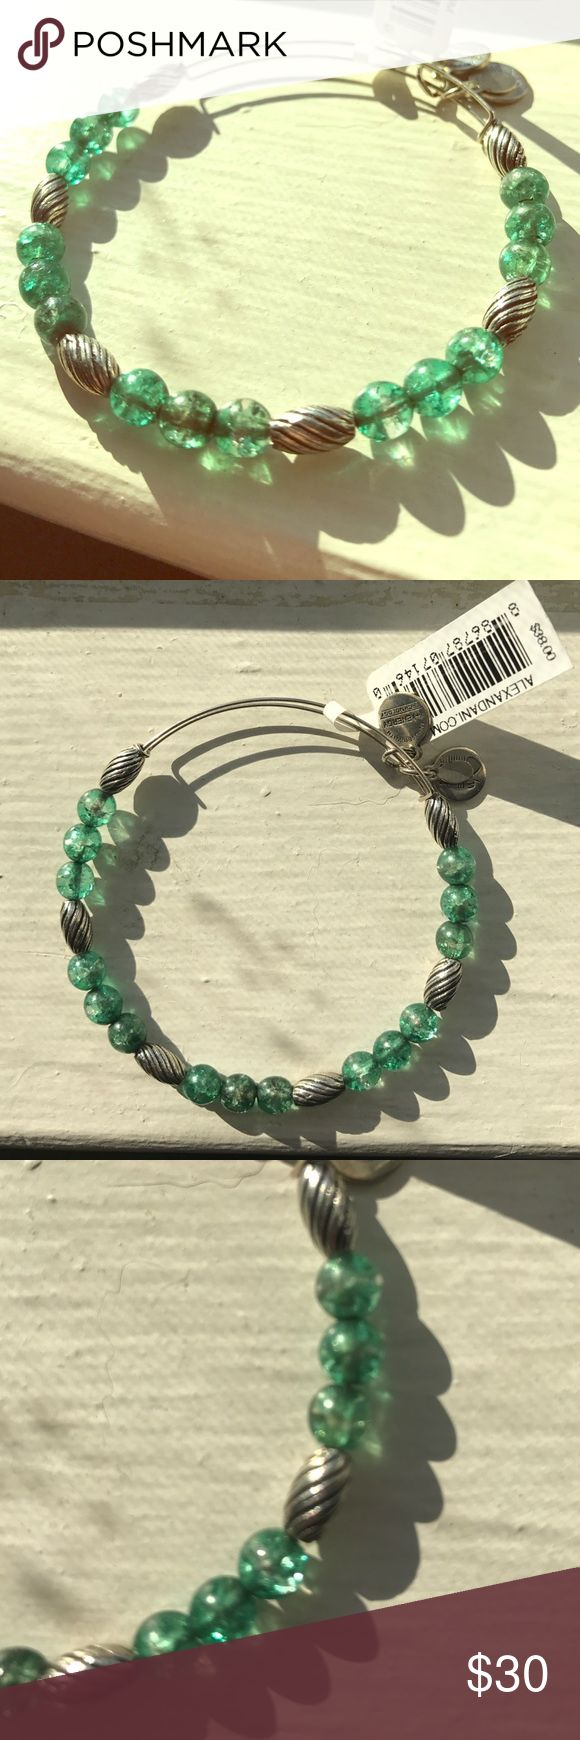 NWT Alex & Ani Watercolor beaded bangle in Fern. NWT! Retired, mixed beaded bangle. Gorgeous green beads. Expandable. Includes meaning card and pouch. Alex & Ani Jewelry Bracelets